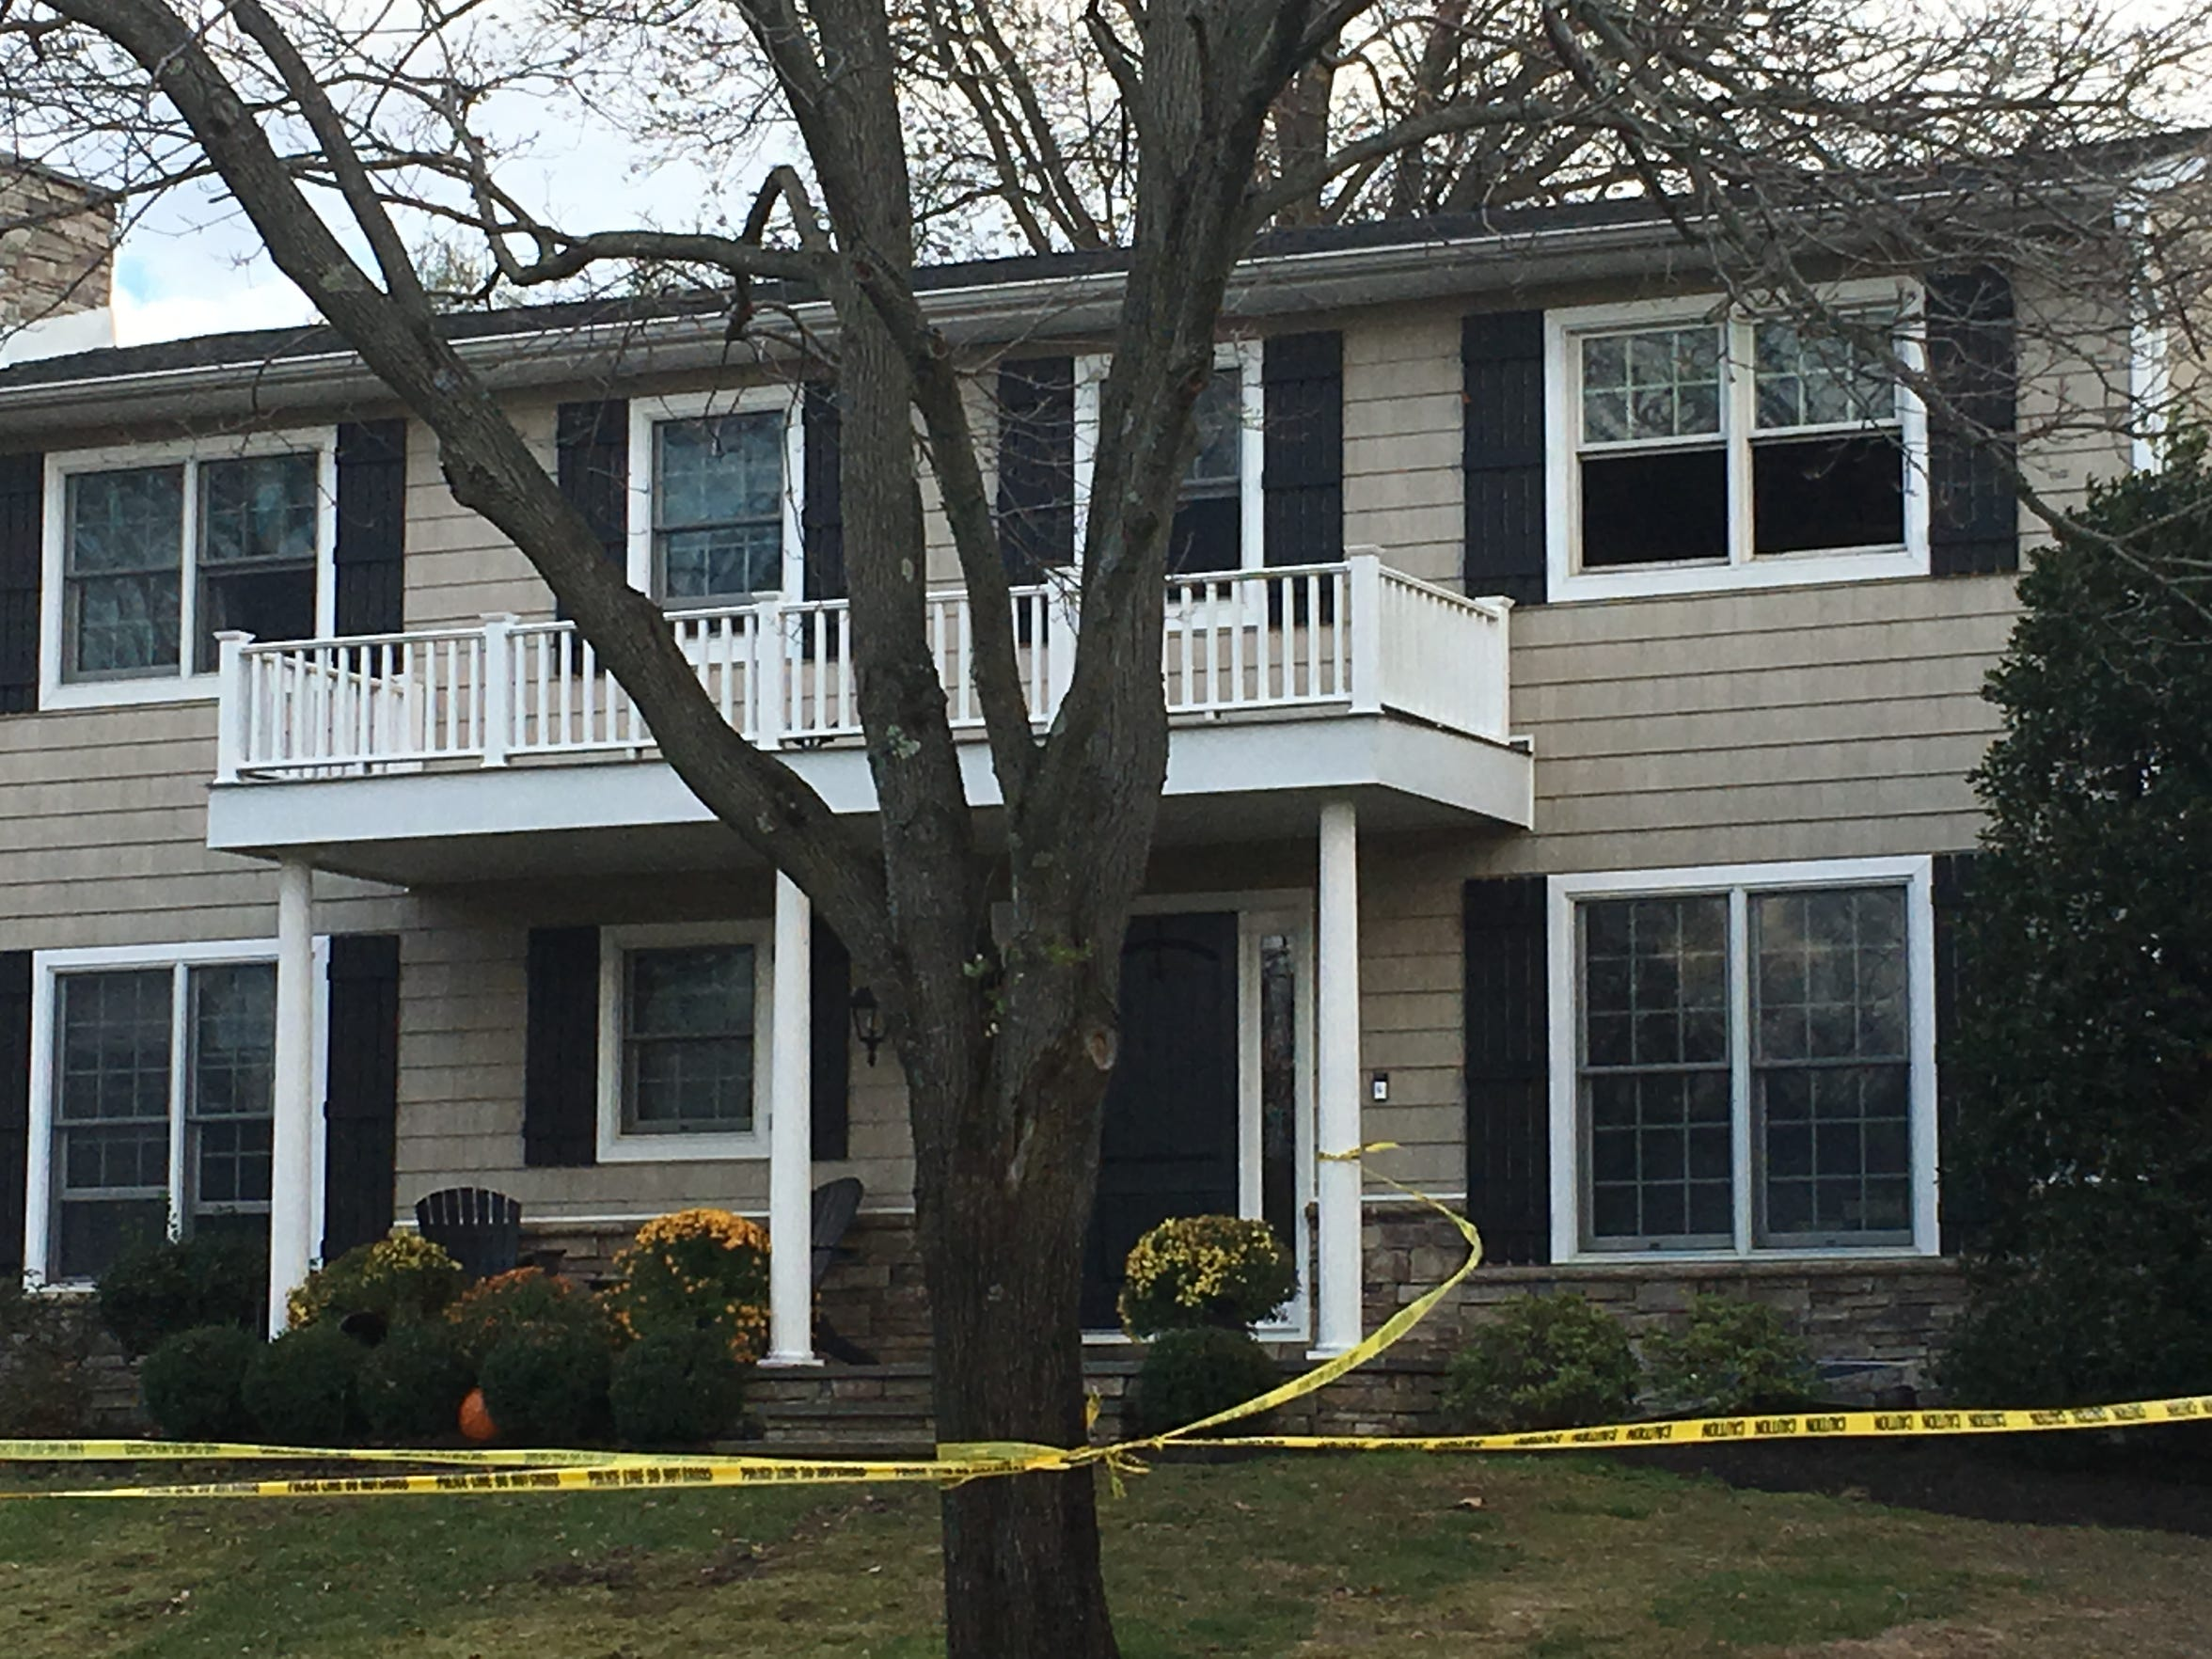 Crime scene tape surrounded a home on Tilton Drive in Ocean Township Tuesday afternoon.